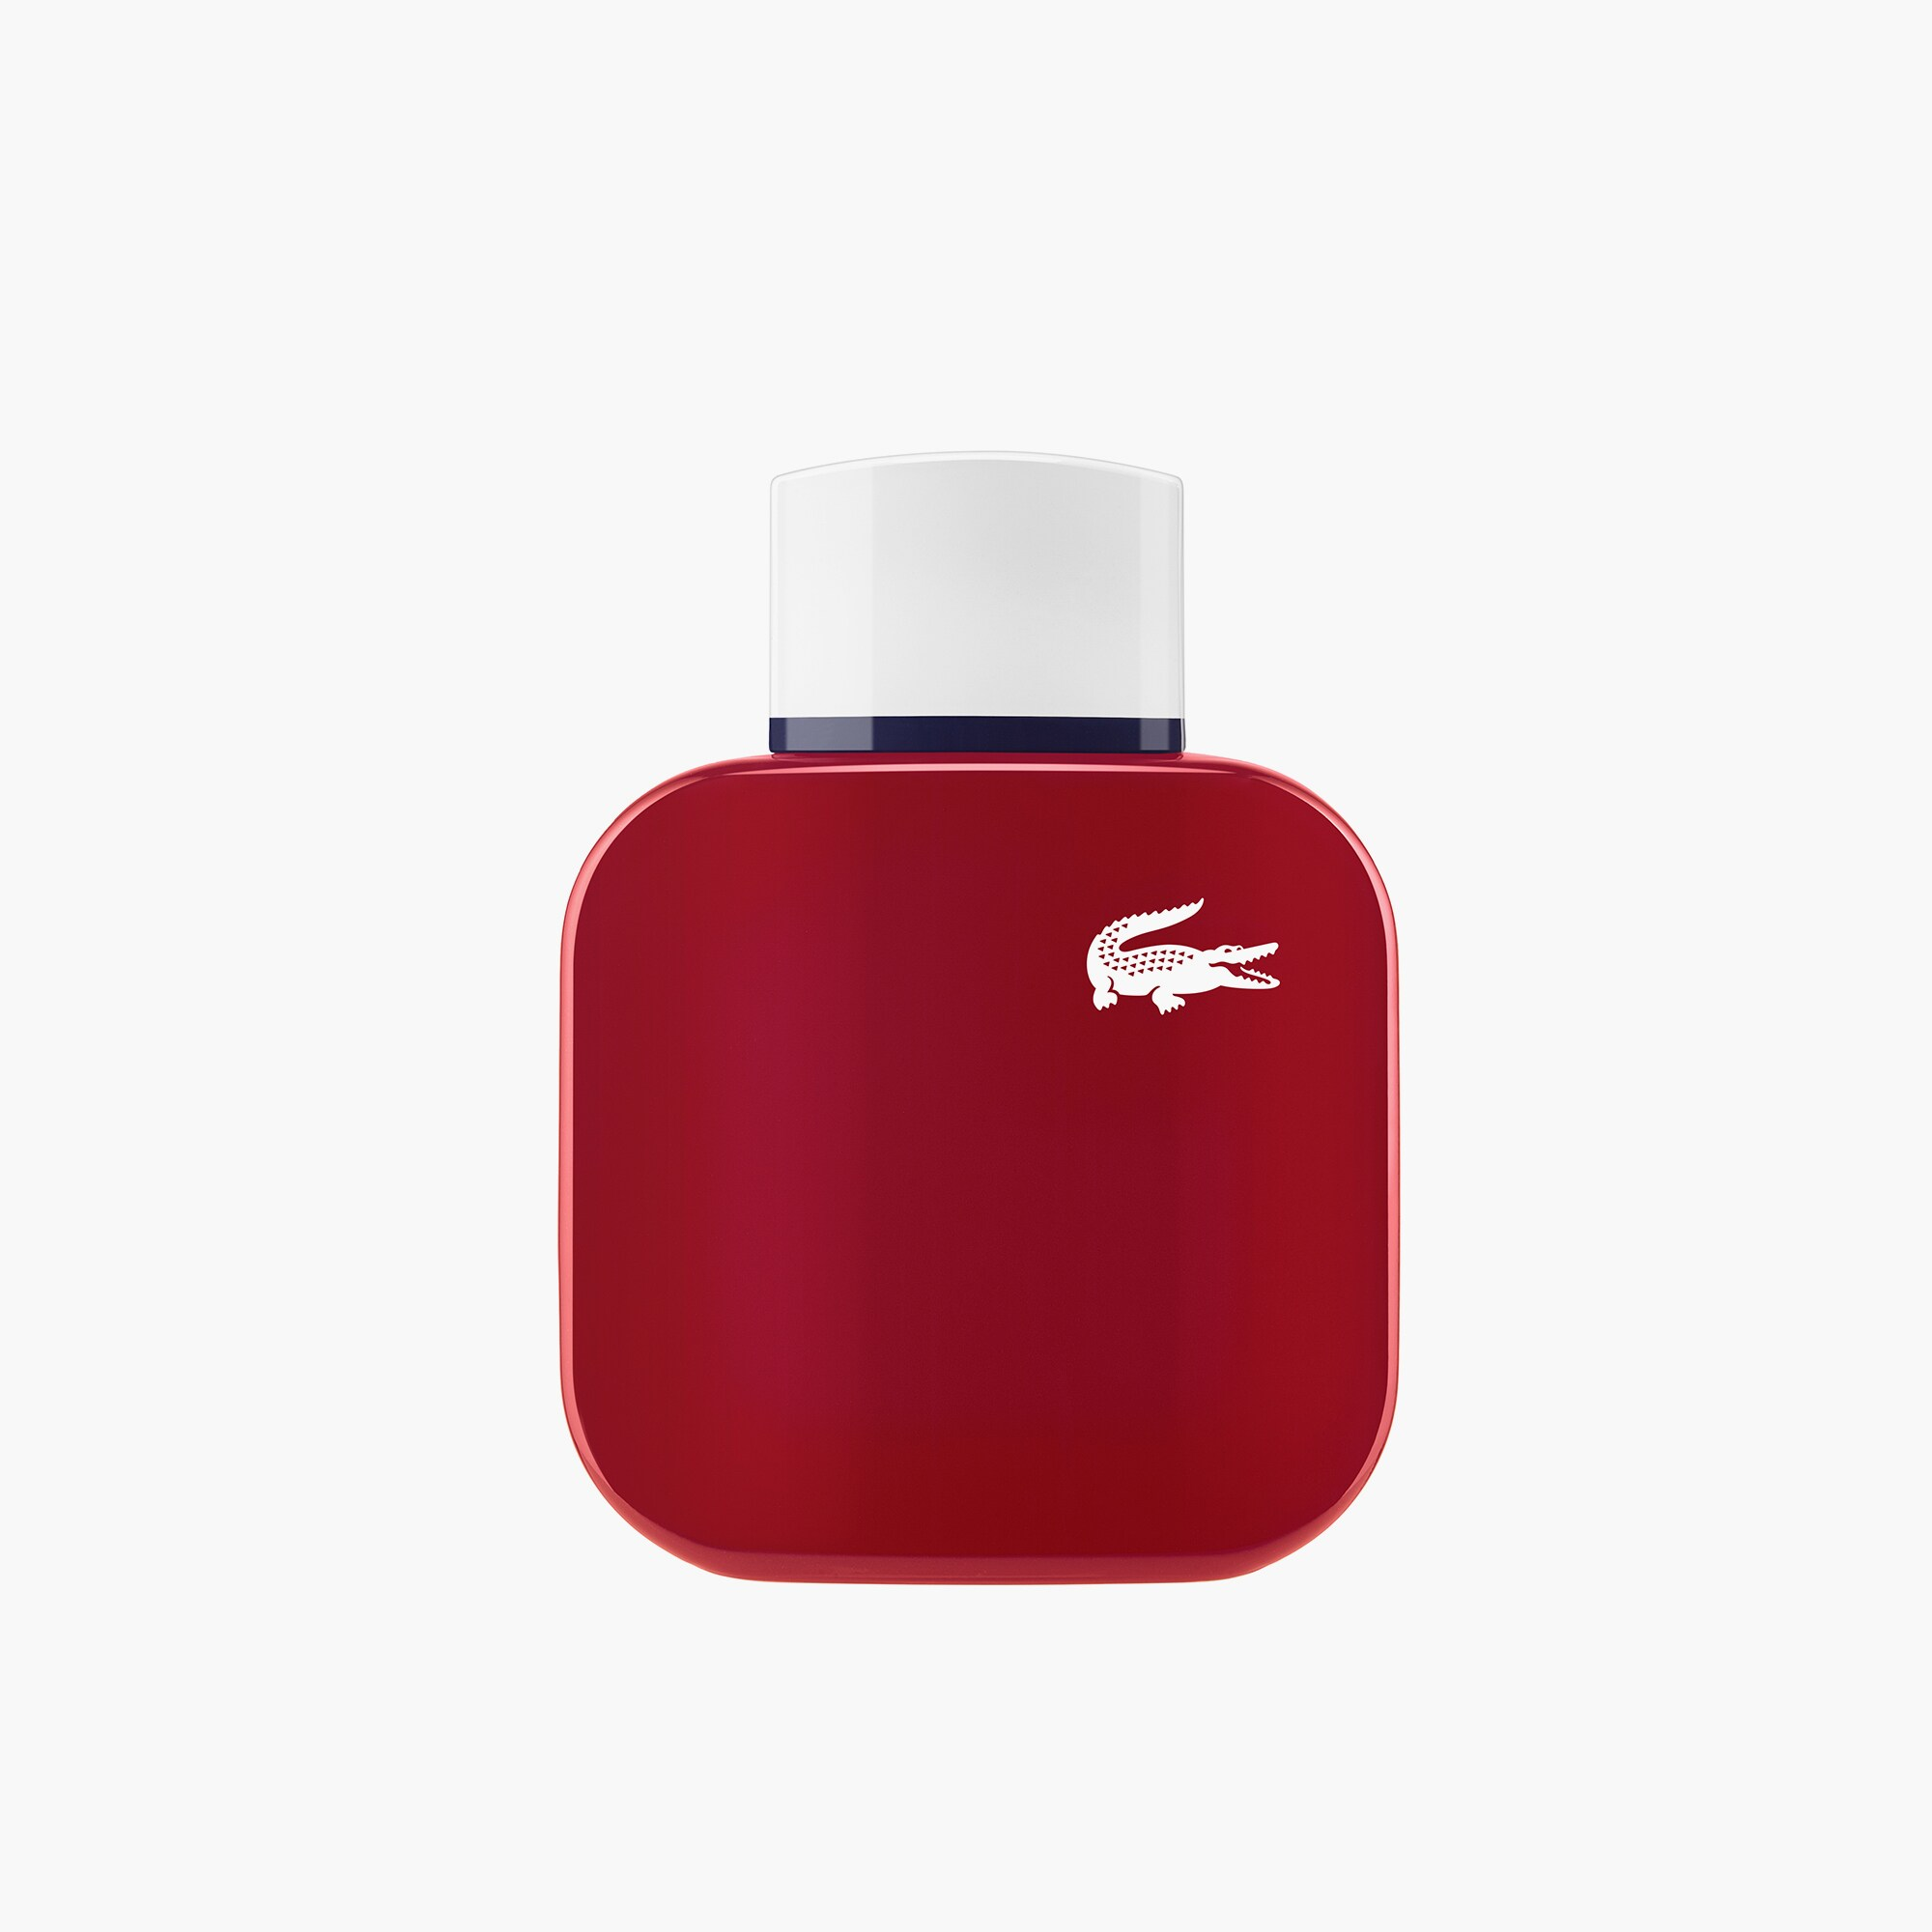 becf61bd19 Lacoste Perfumes for Women | LACOSTE